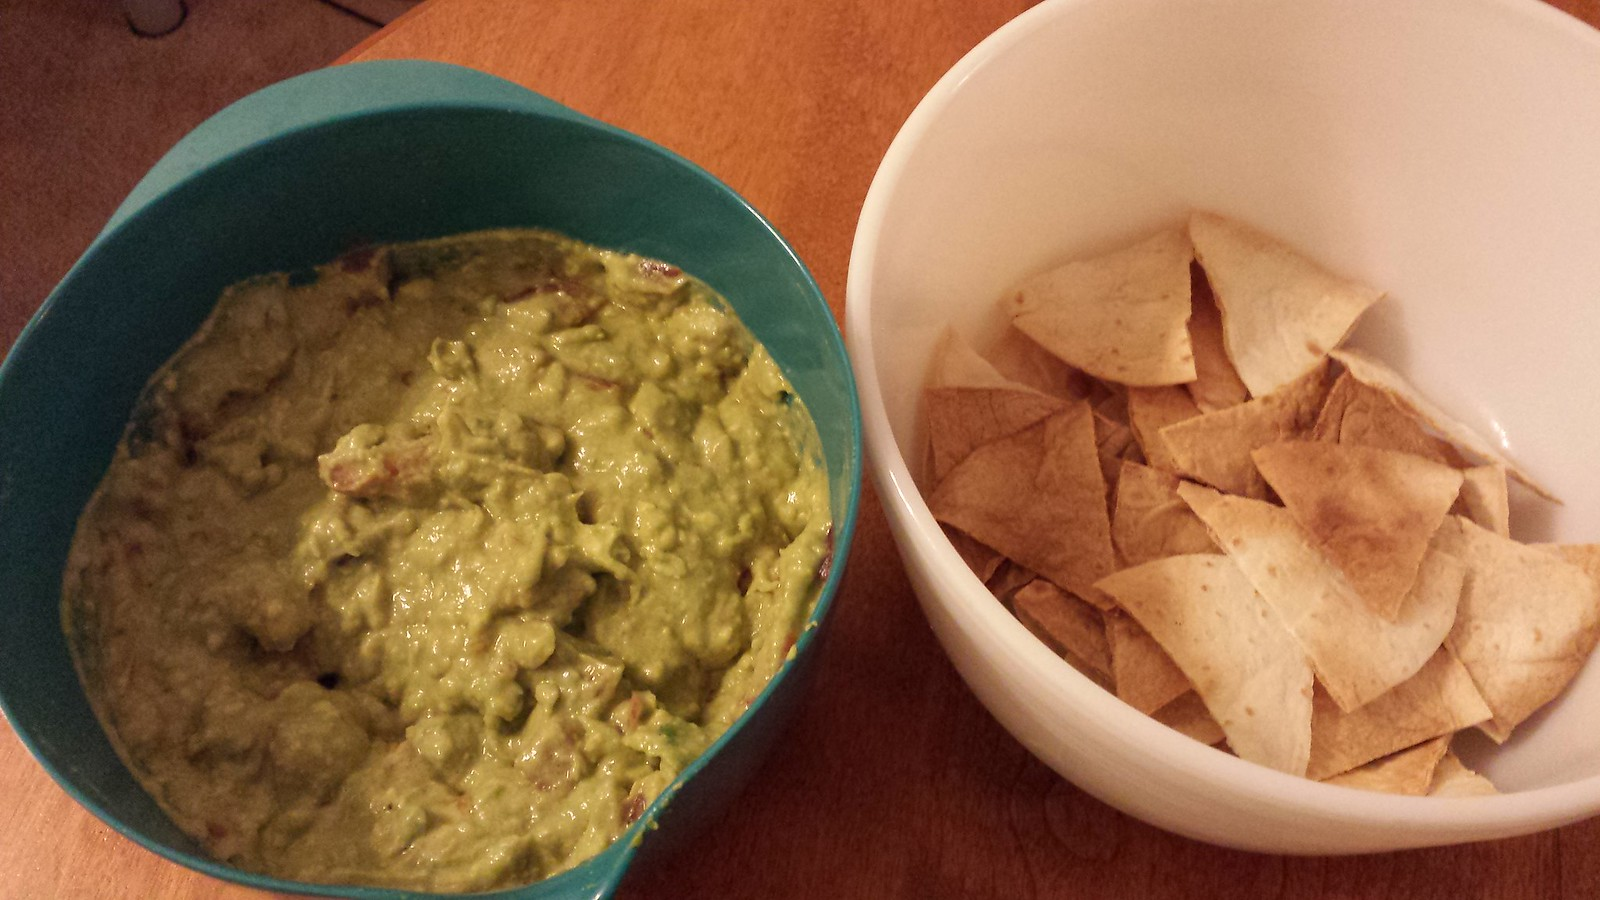 Homemade guacamole and roastewd tortilla chips.